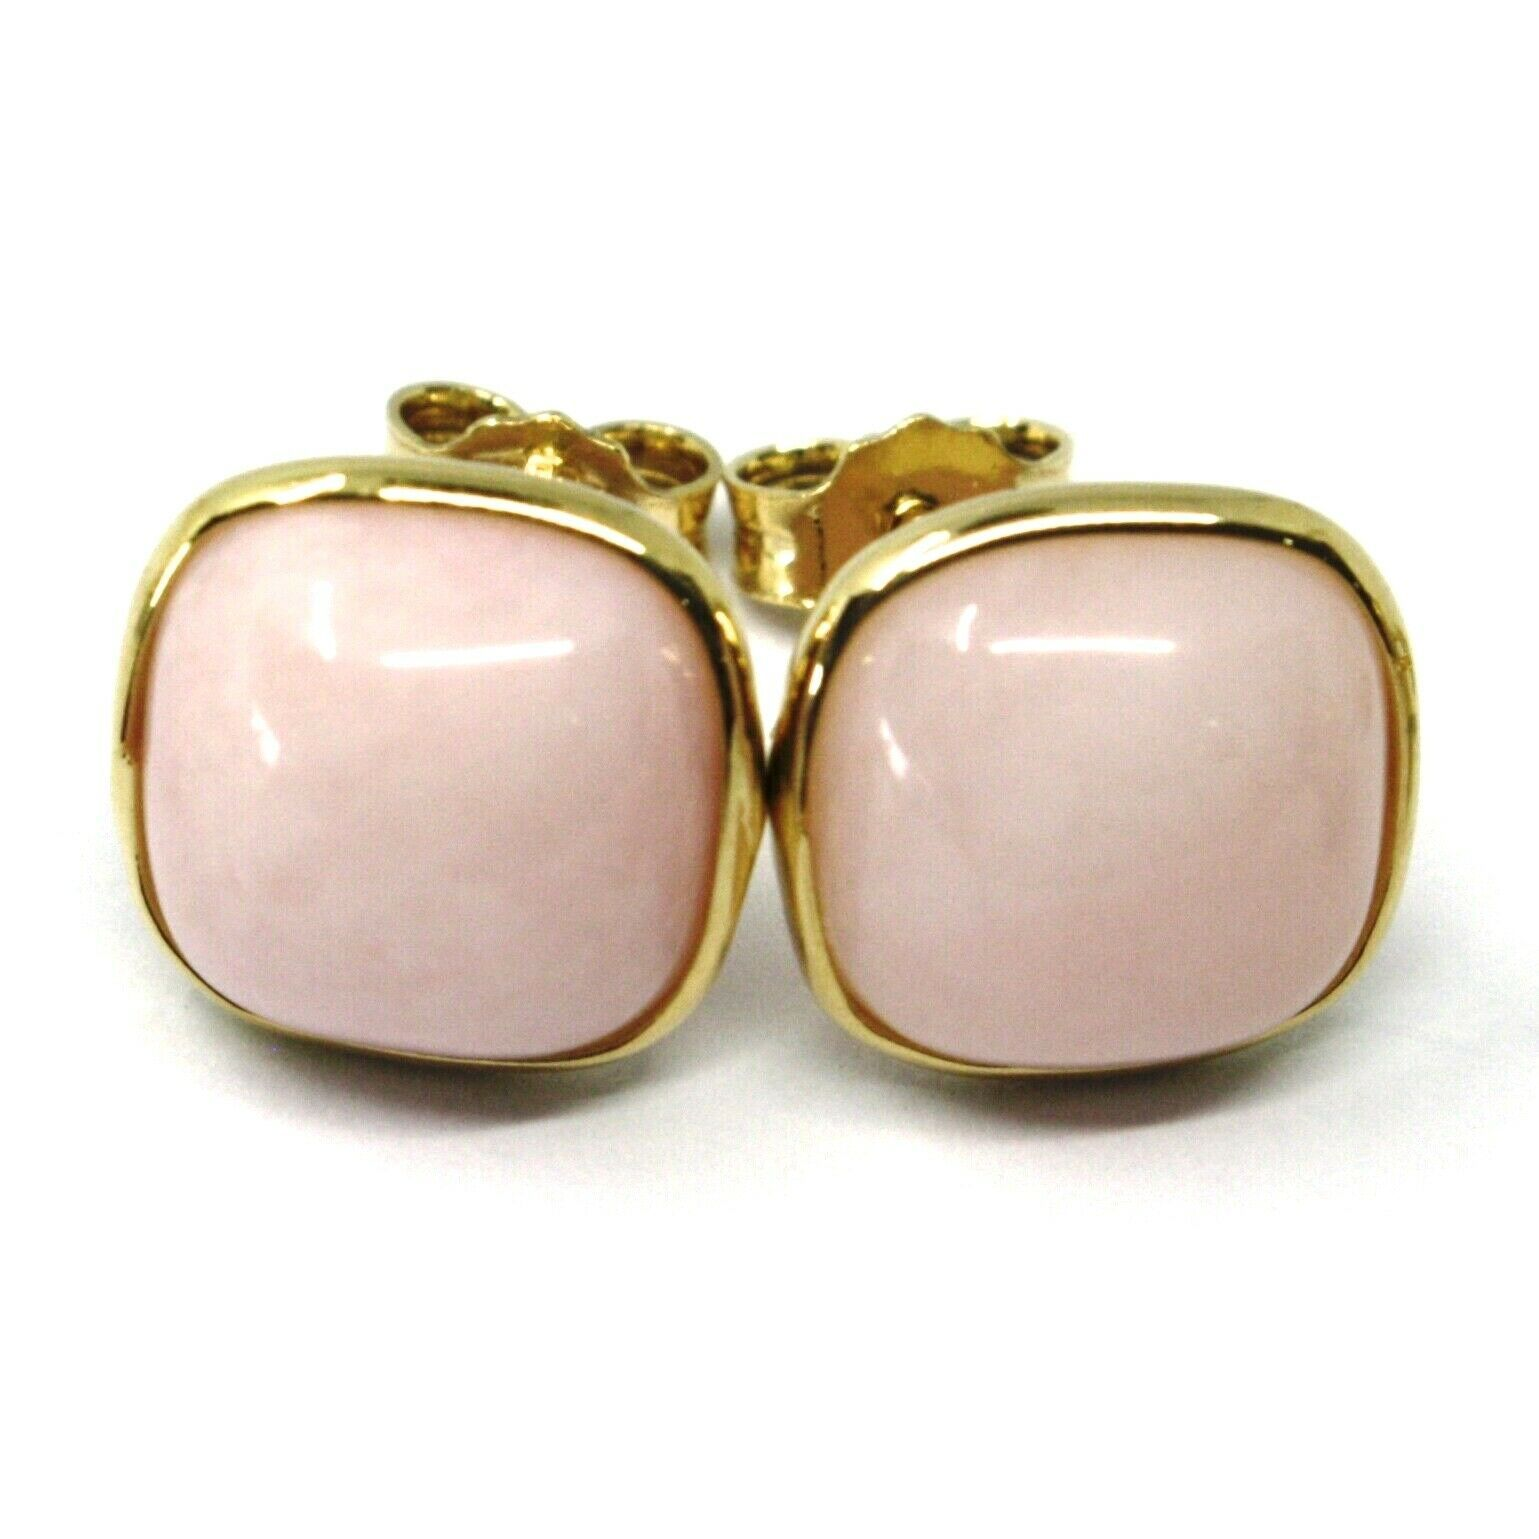 18K YELLOW GOLD BUTTON LOBE EARRINGS, CABOCHON SQUARE PINK OPAL DIAMETER 10mm